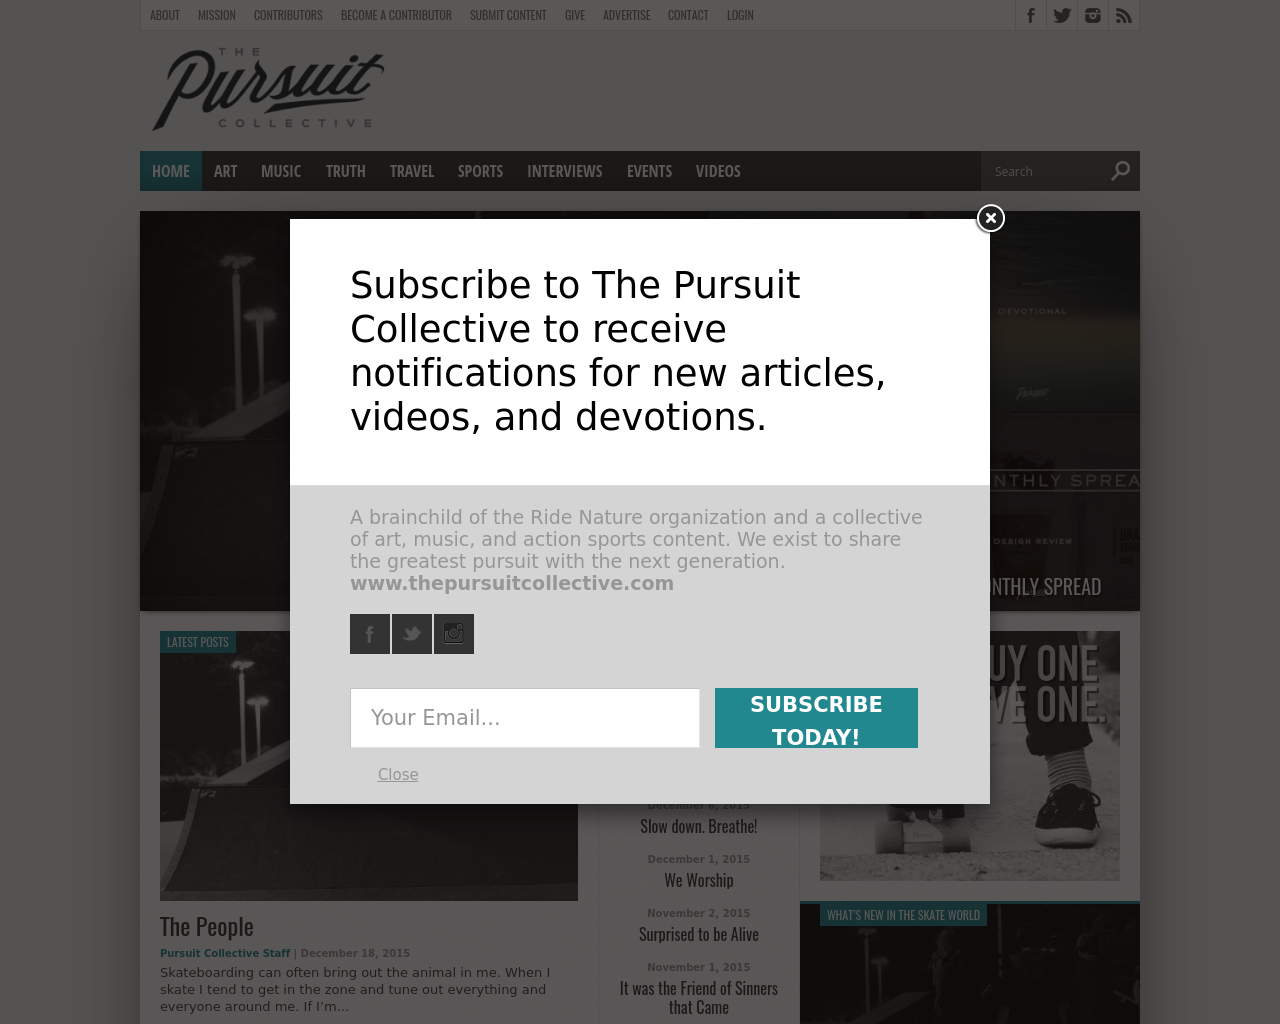 The-Pursuit-Collective-Advertising-Reviews-Pricing